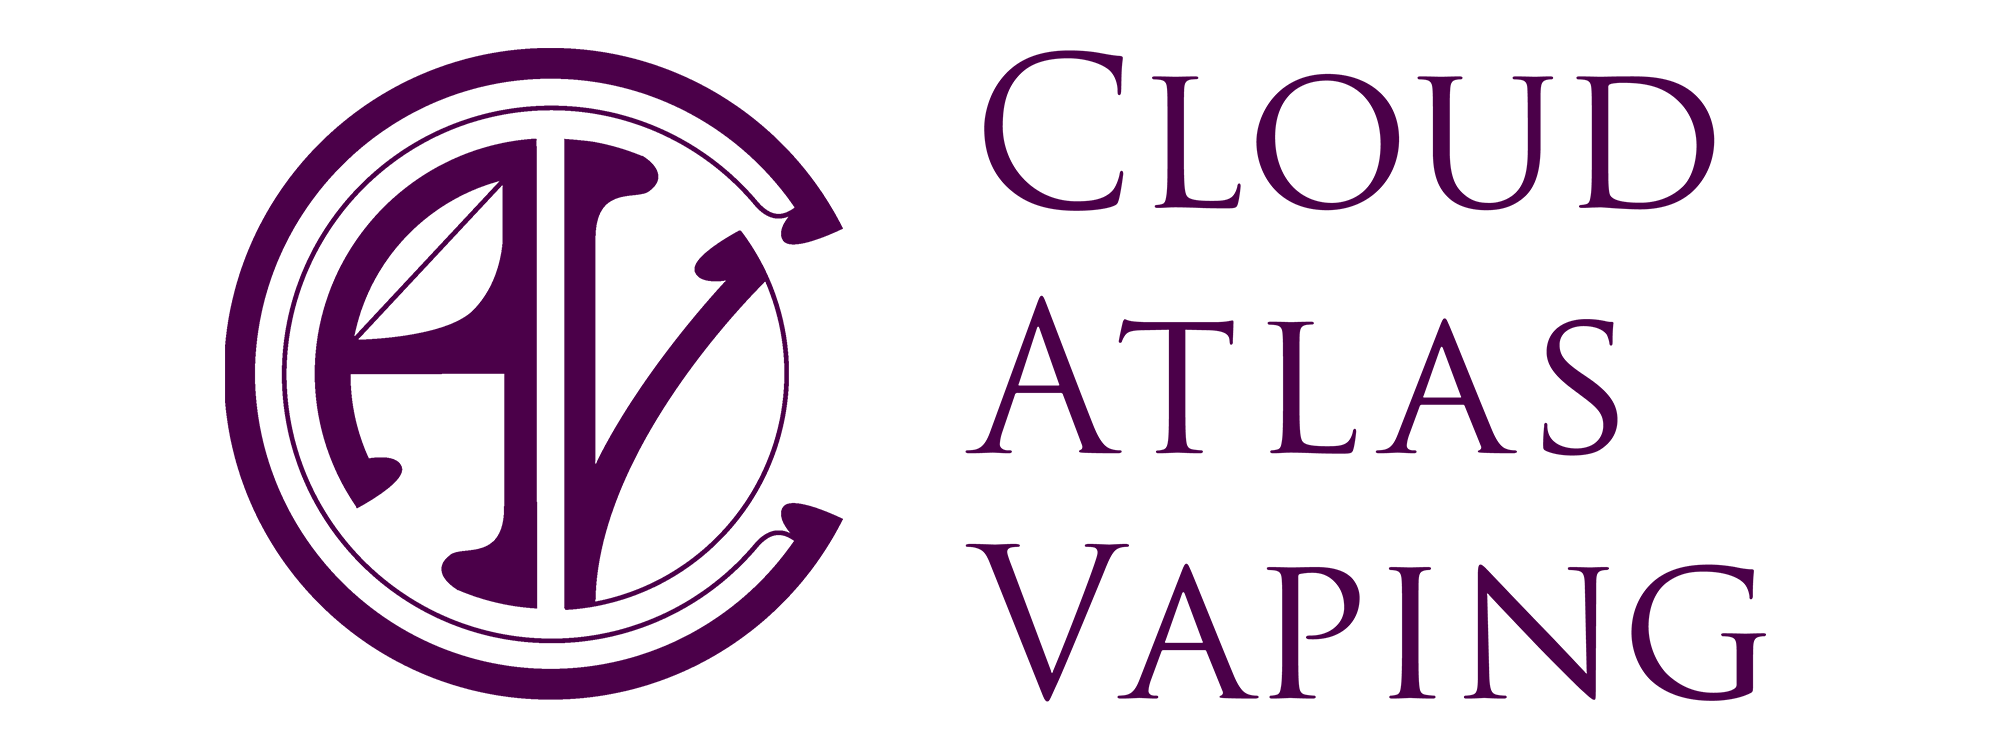 Cloud Atlas Vaping